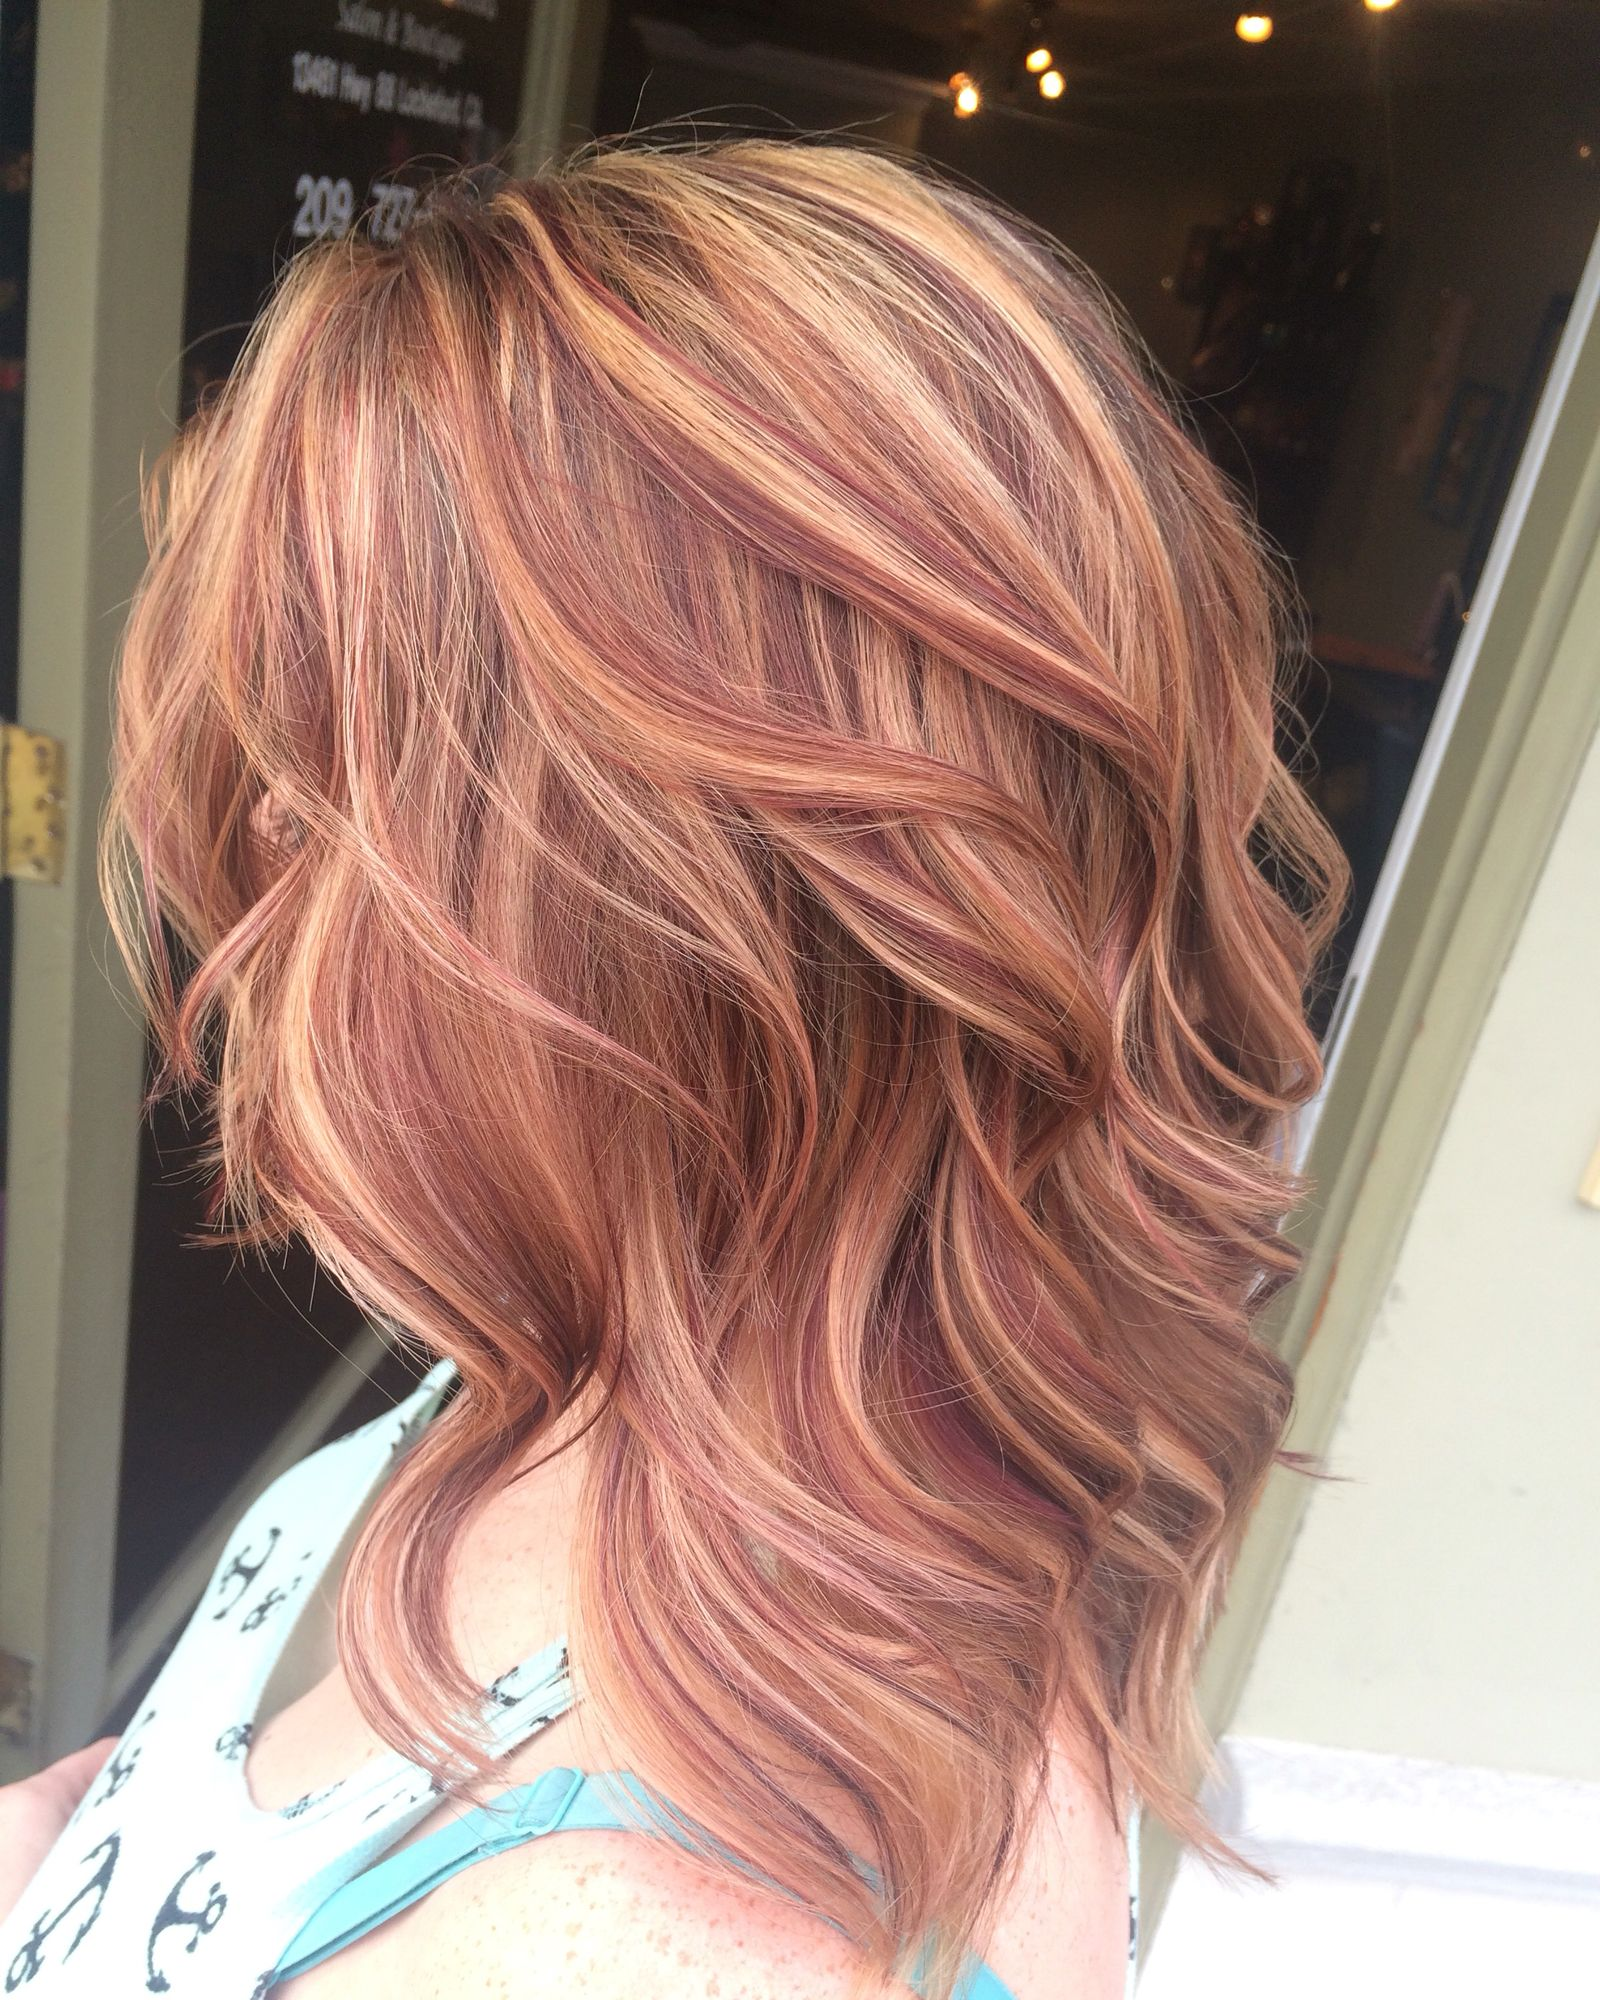 Blonde and red highlights in brown curly hair